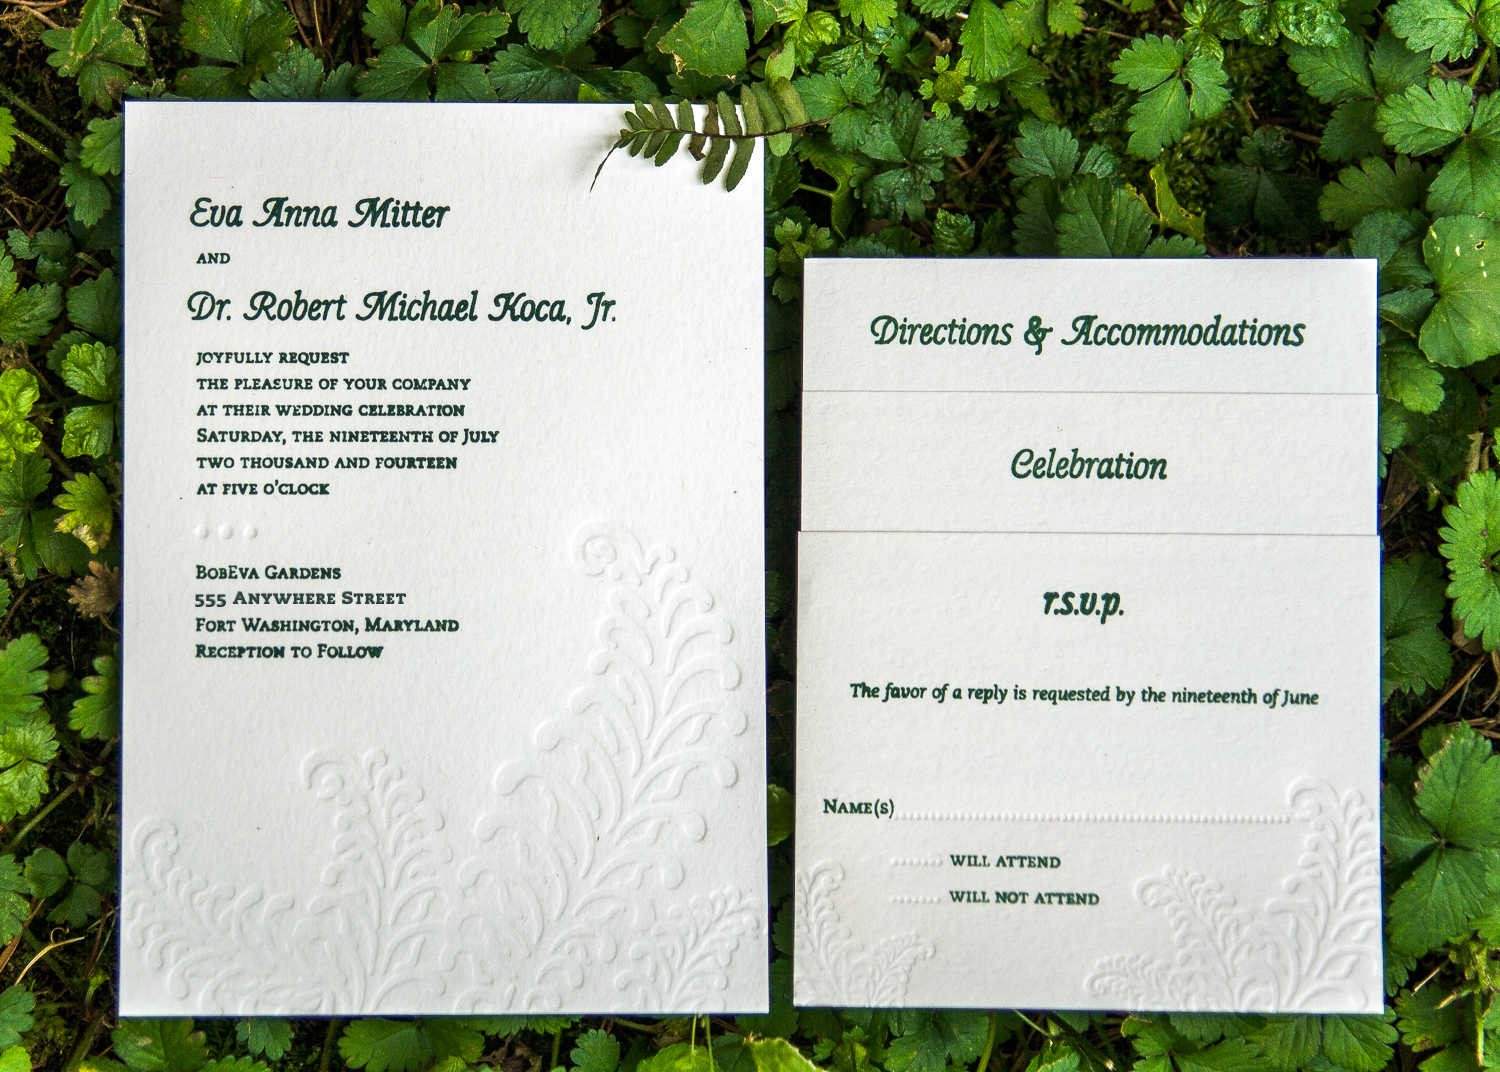 Letterpressed wedding invitations by Lindsay Benson Garrett